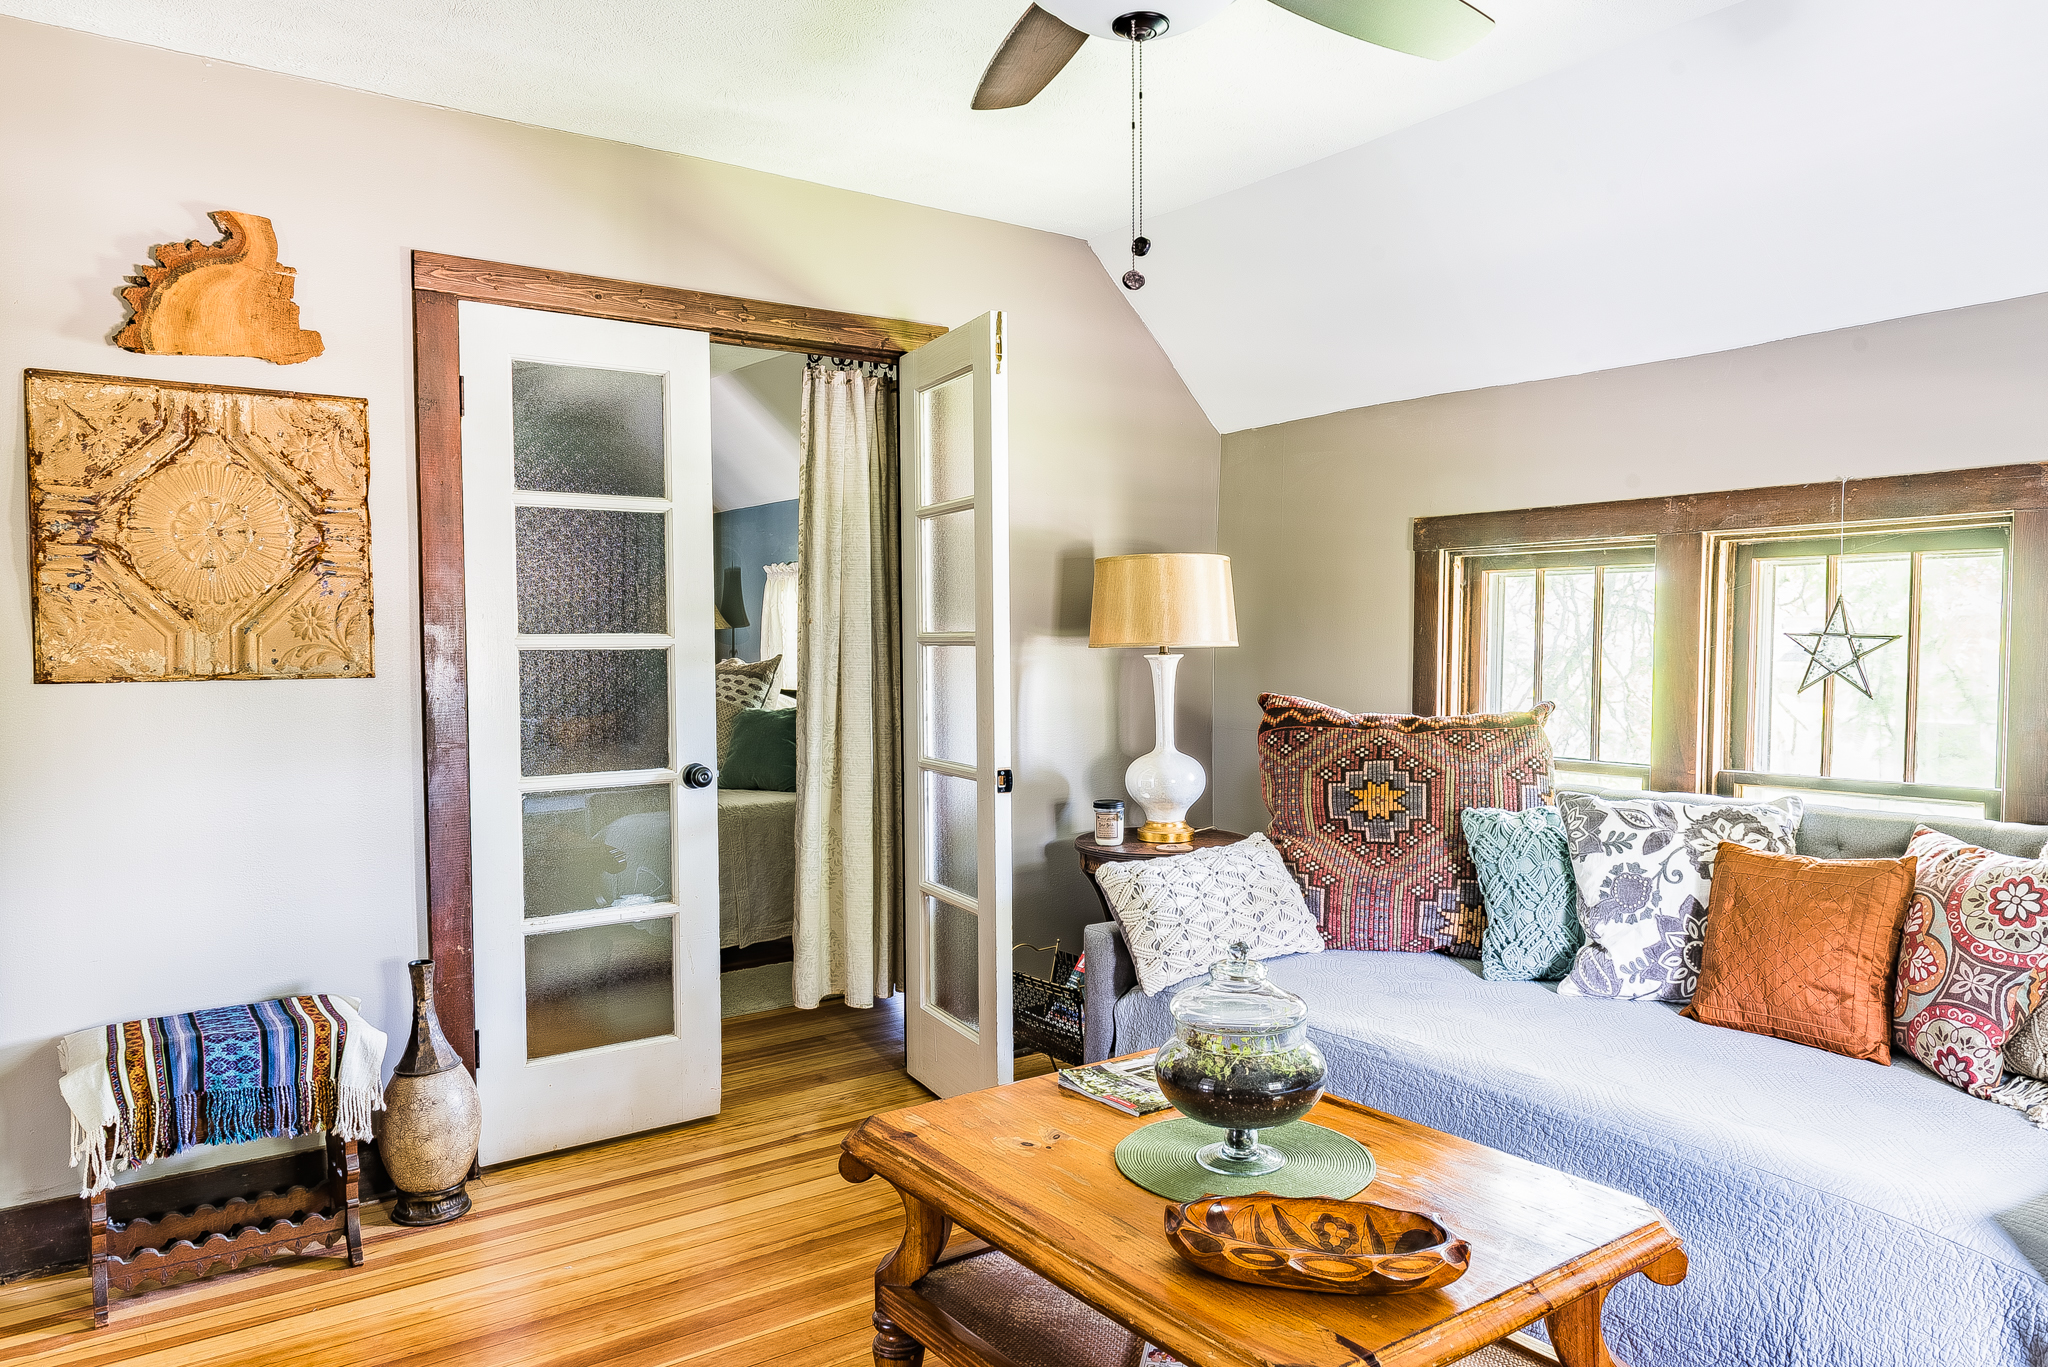 French doors with curtain separating living room and bedroom one